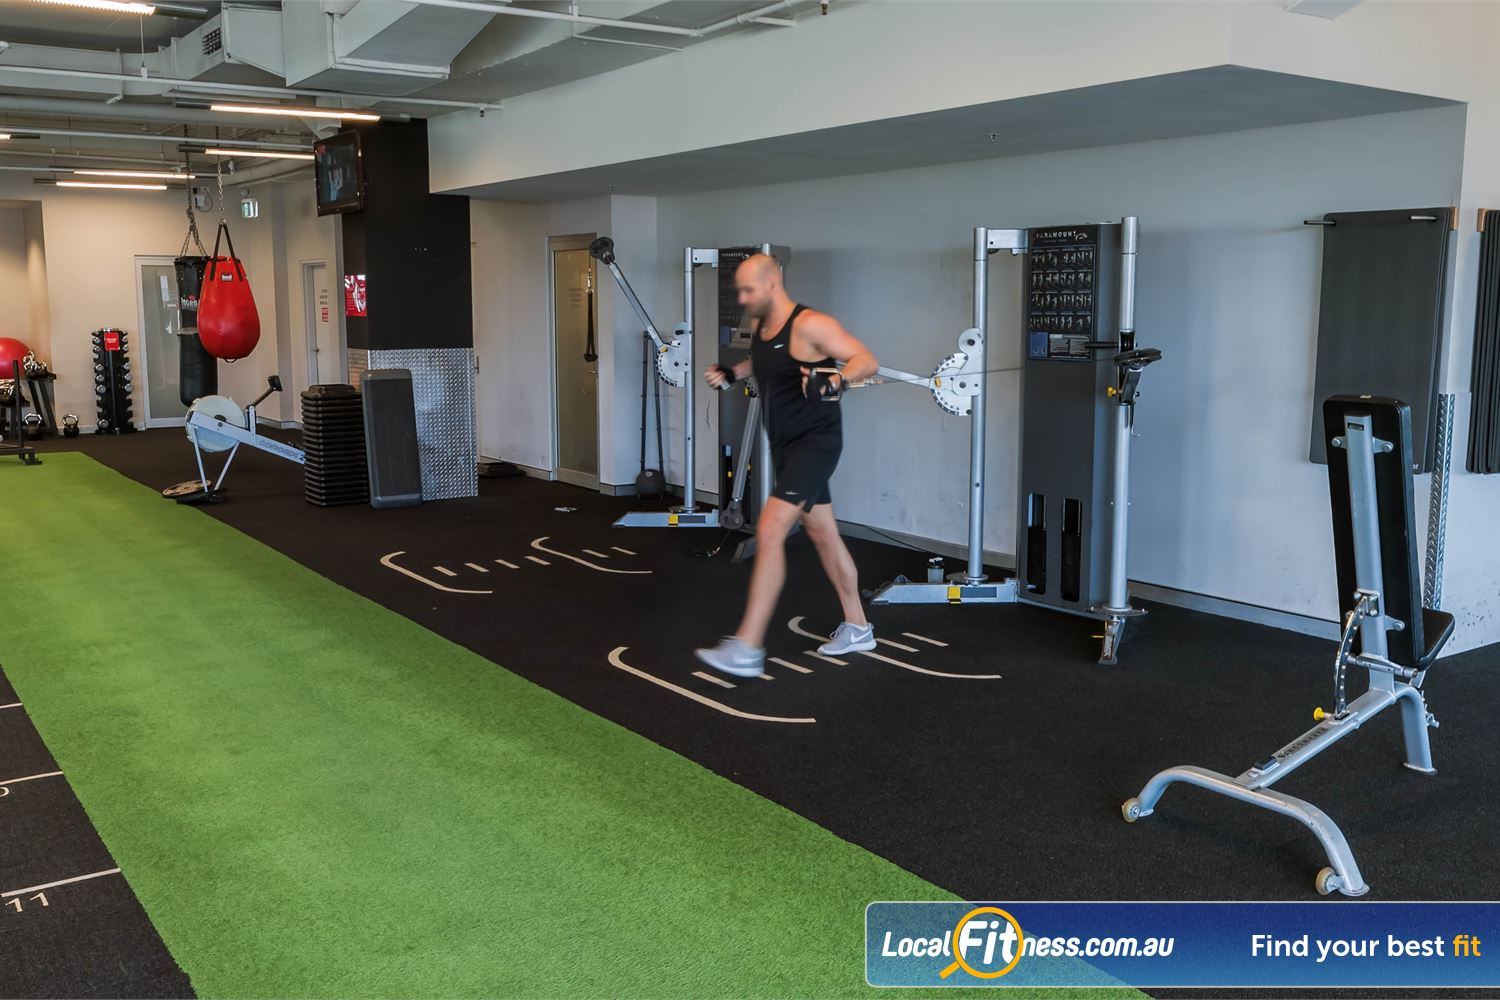 Fitness First Platinum Kings Cross Potts Point Indoor sled track perfect for sprints and sled strength training.